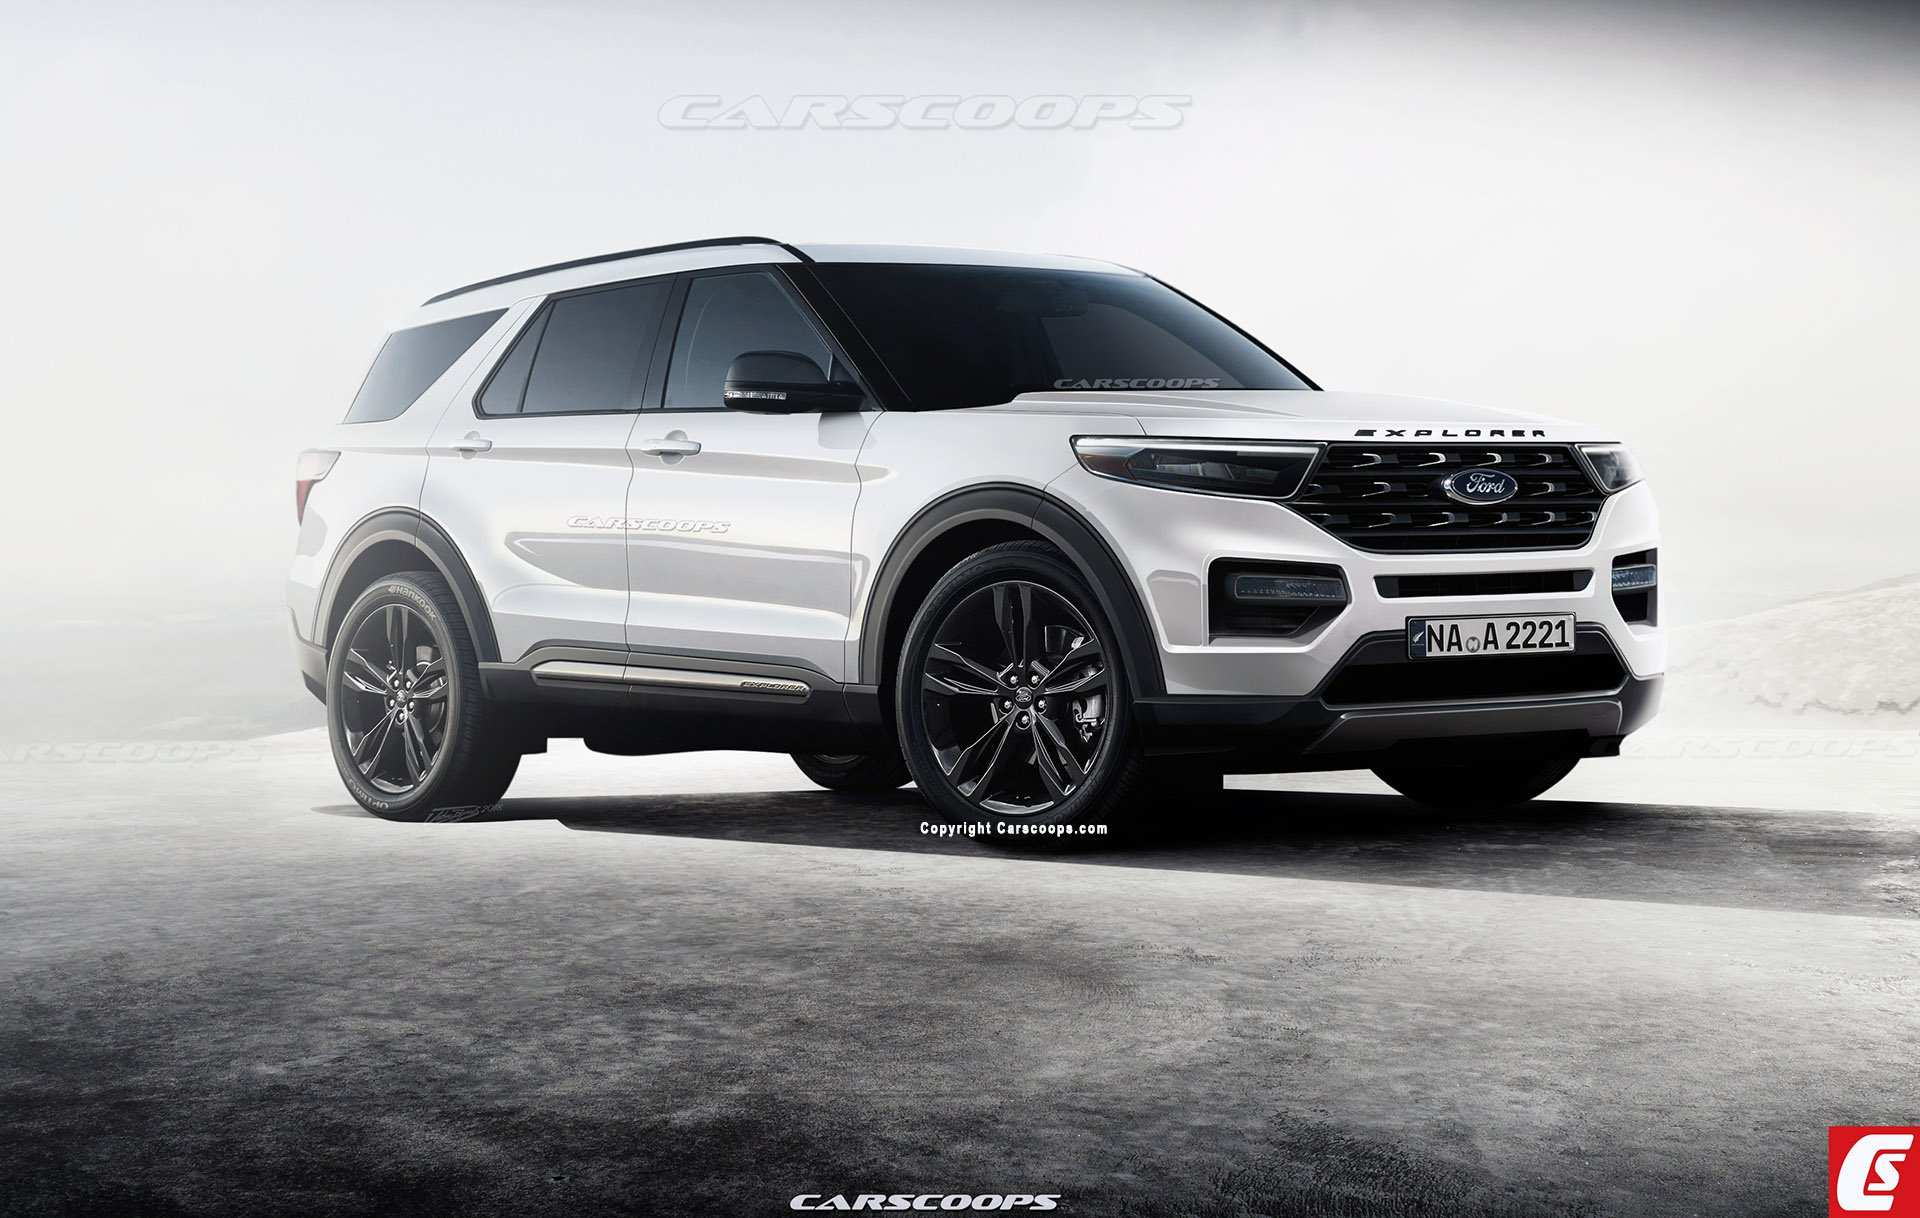 45 The Best Ford Explorer St 2020 Price And Review